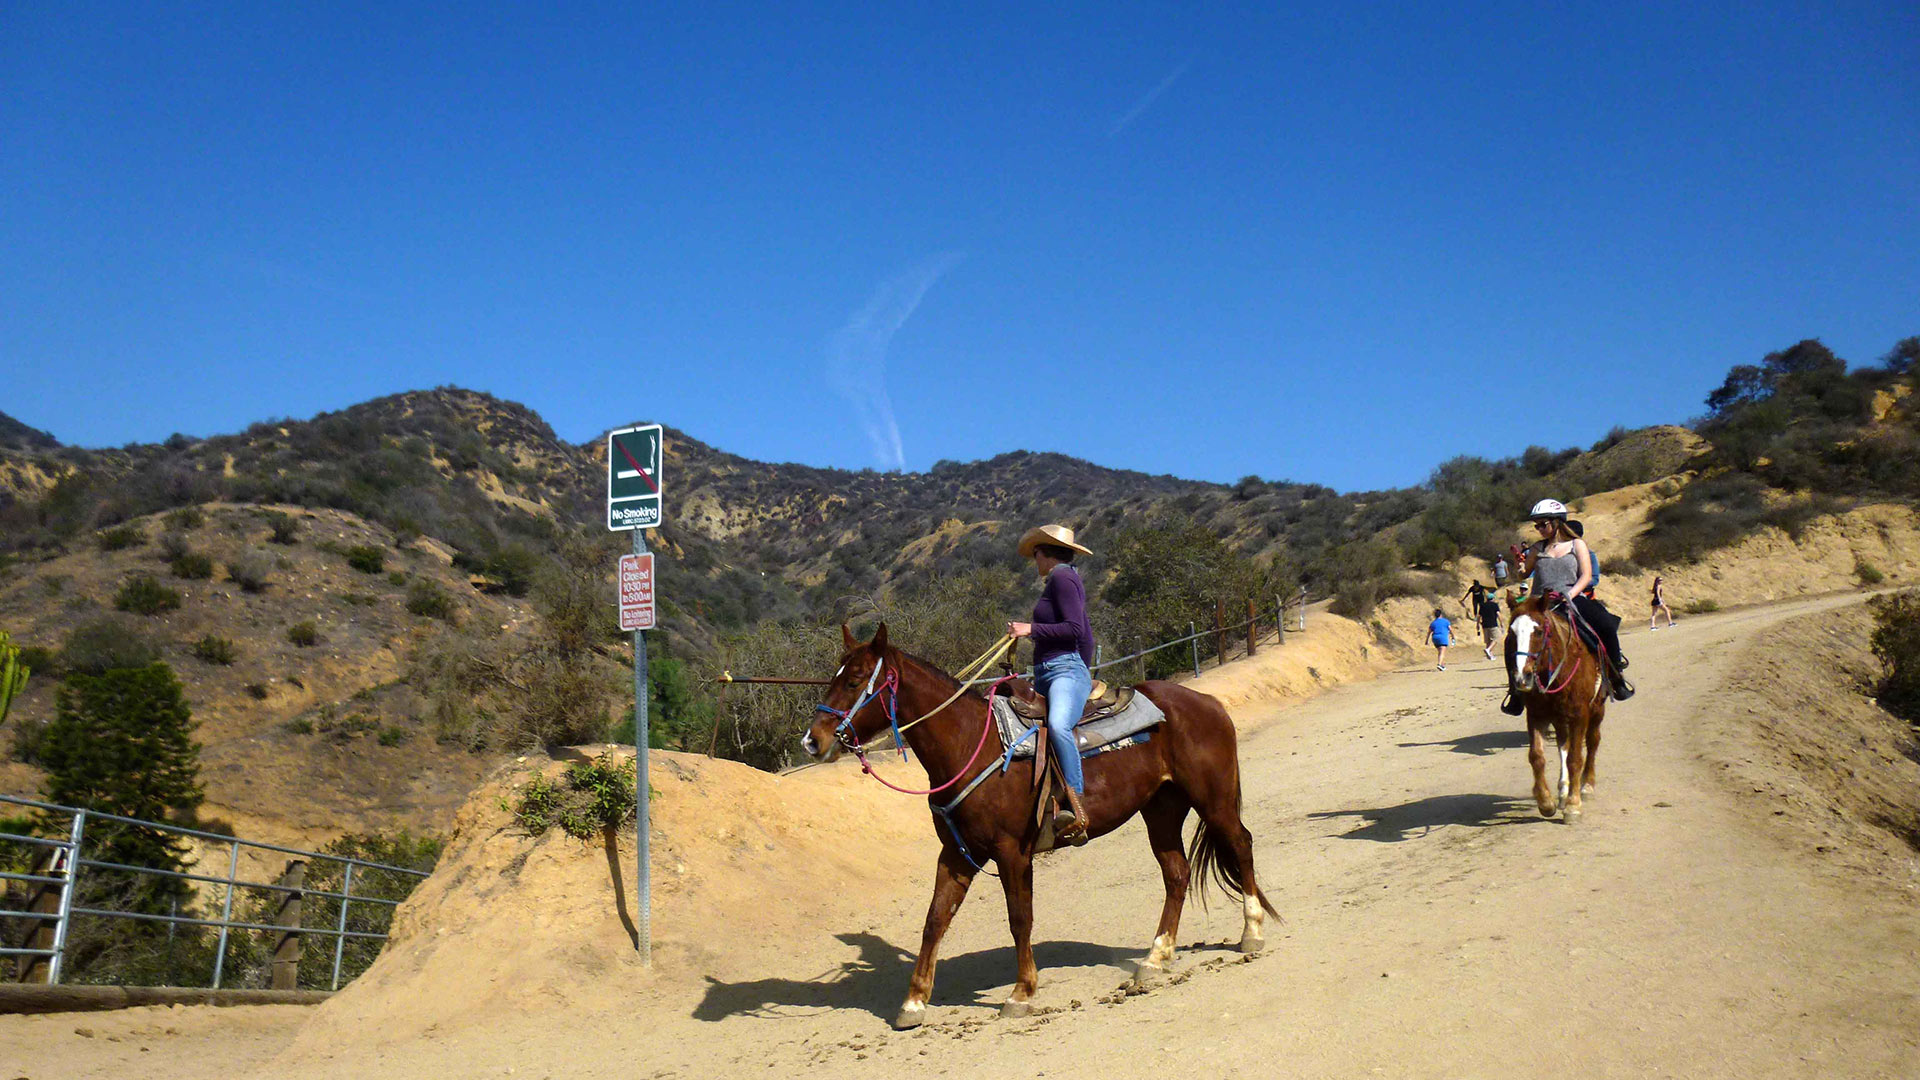 Two women ride on horseback in Griffith Park | Sandi Hemmerlein